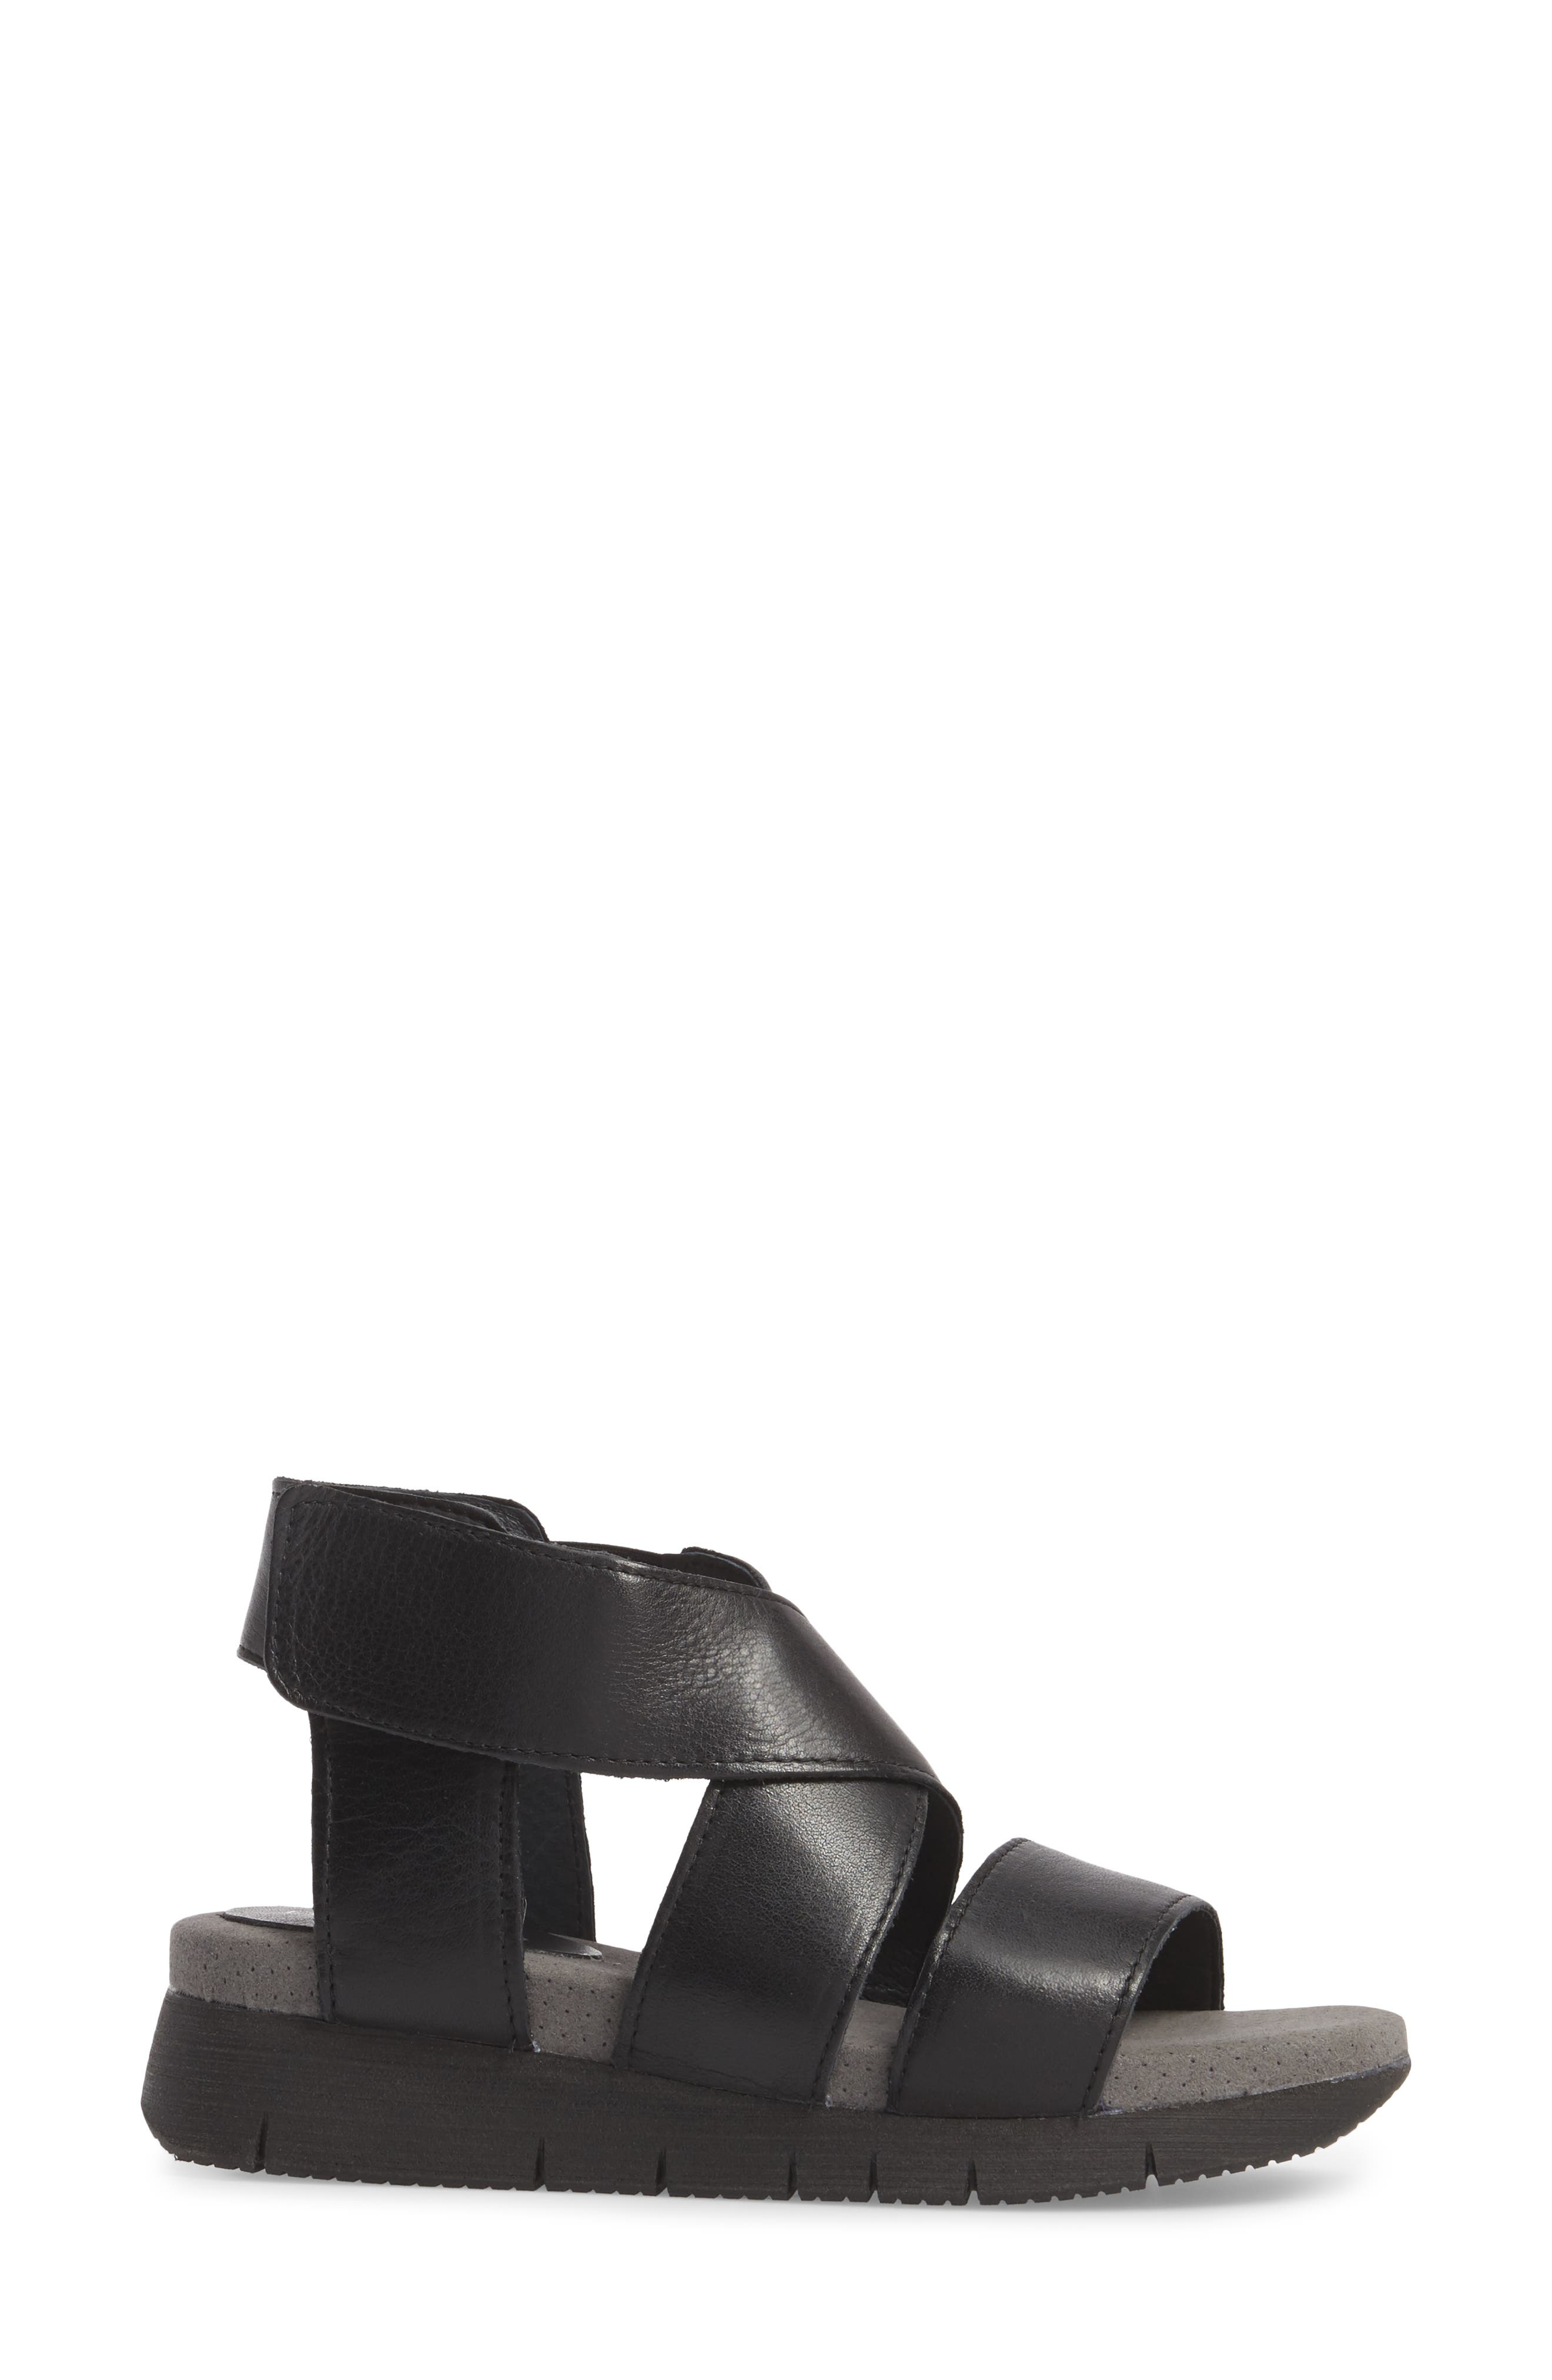 Piper Wedge Sandal,                             Alternate thumbnail 3, color,                             BLACK SAUVAGE LEATHER